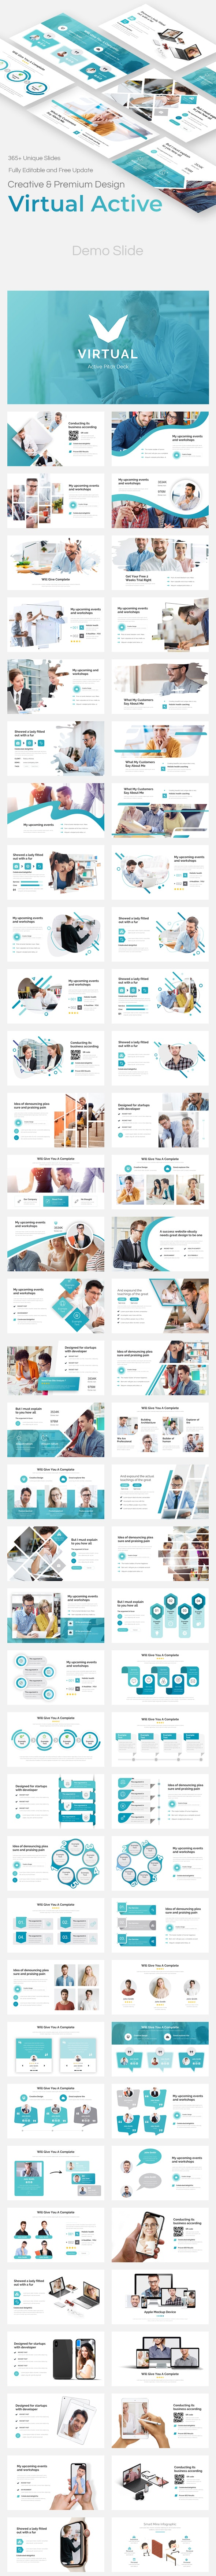 Virtual Active Pitch Deck Powerpoint Template - Business PowerPoint Templates